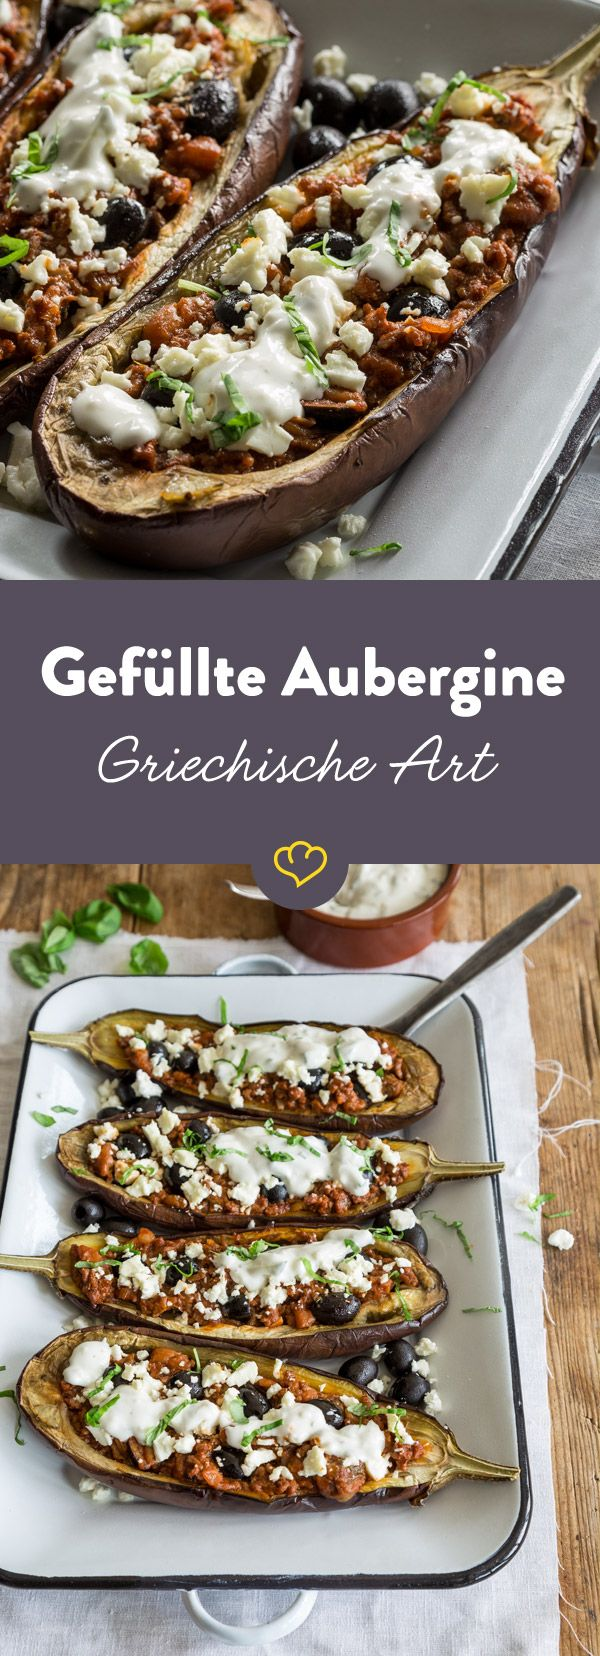 gef llte aubergine griechischer art rezept kochen. Black Bedroom Furniture Sets. Home Design Ideas